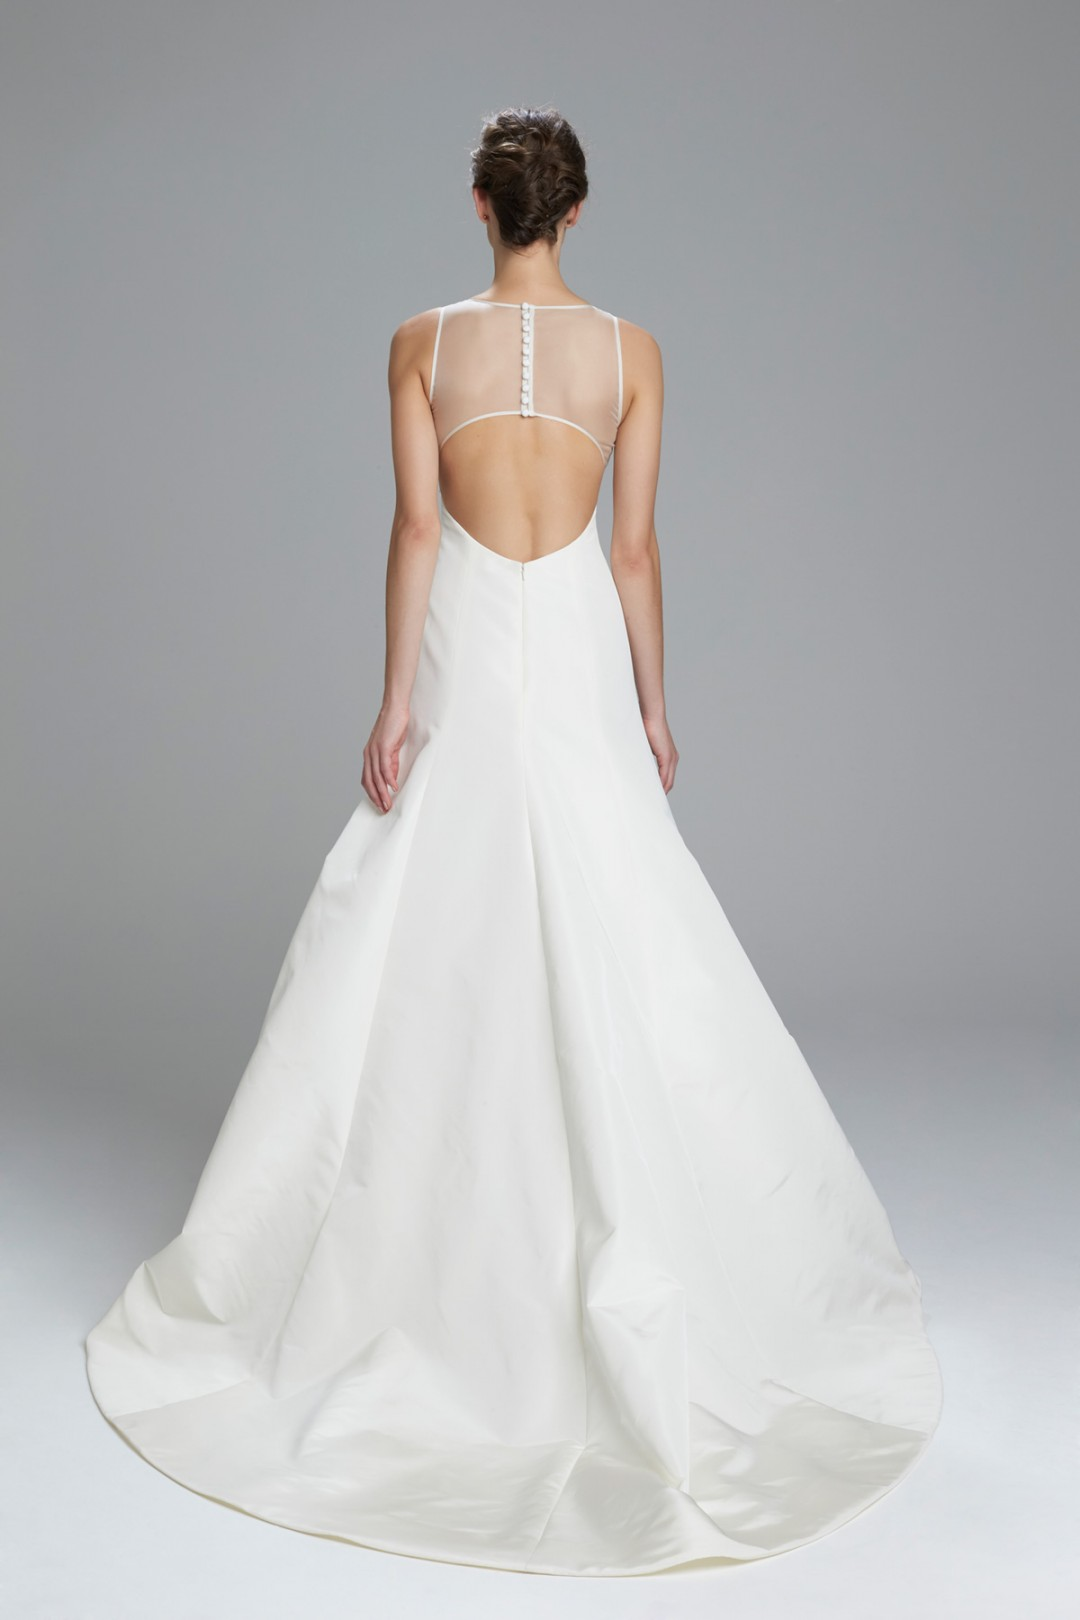 Fit-to-flare-bridal-gown_Keaton-back-by-Amsale-1080x1620.jpg